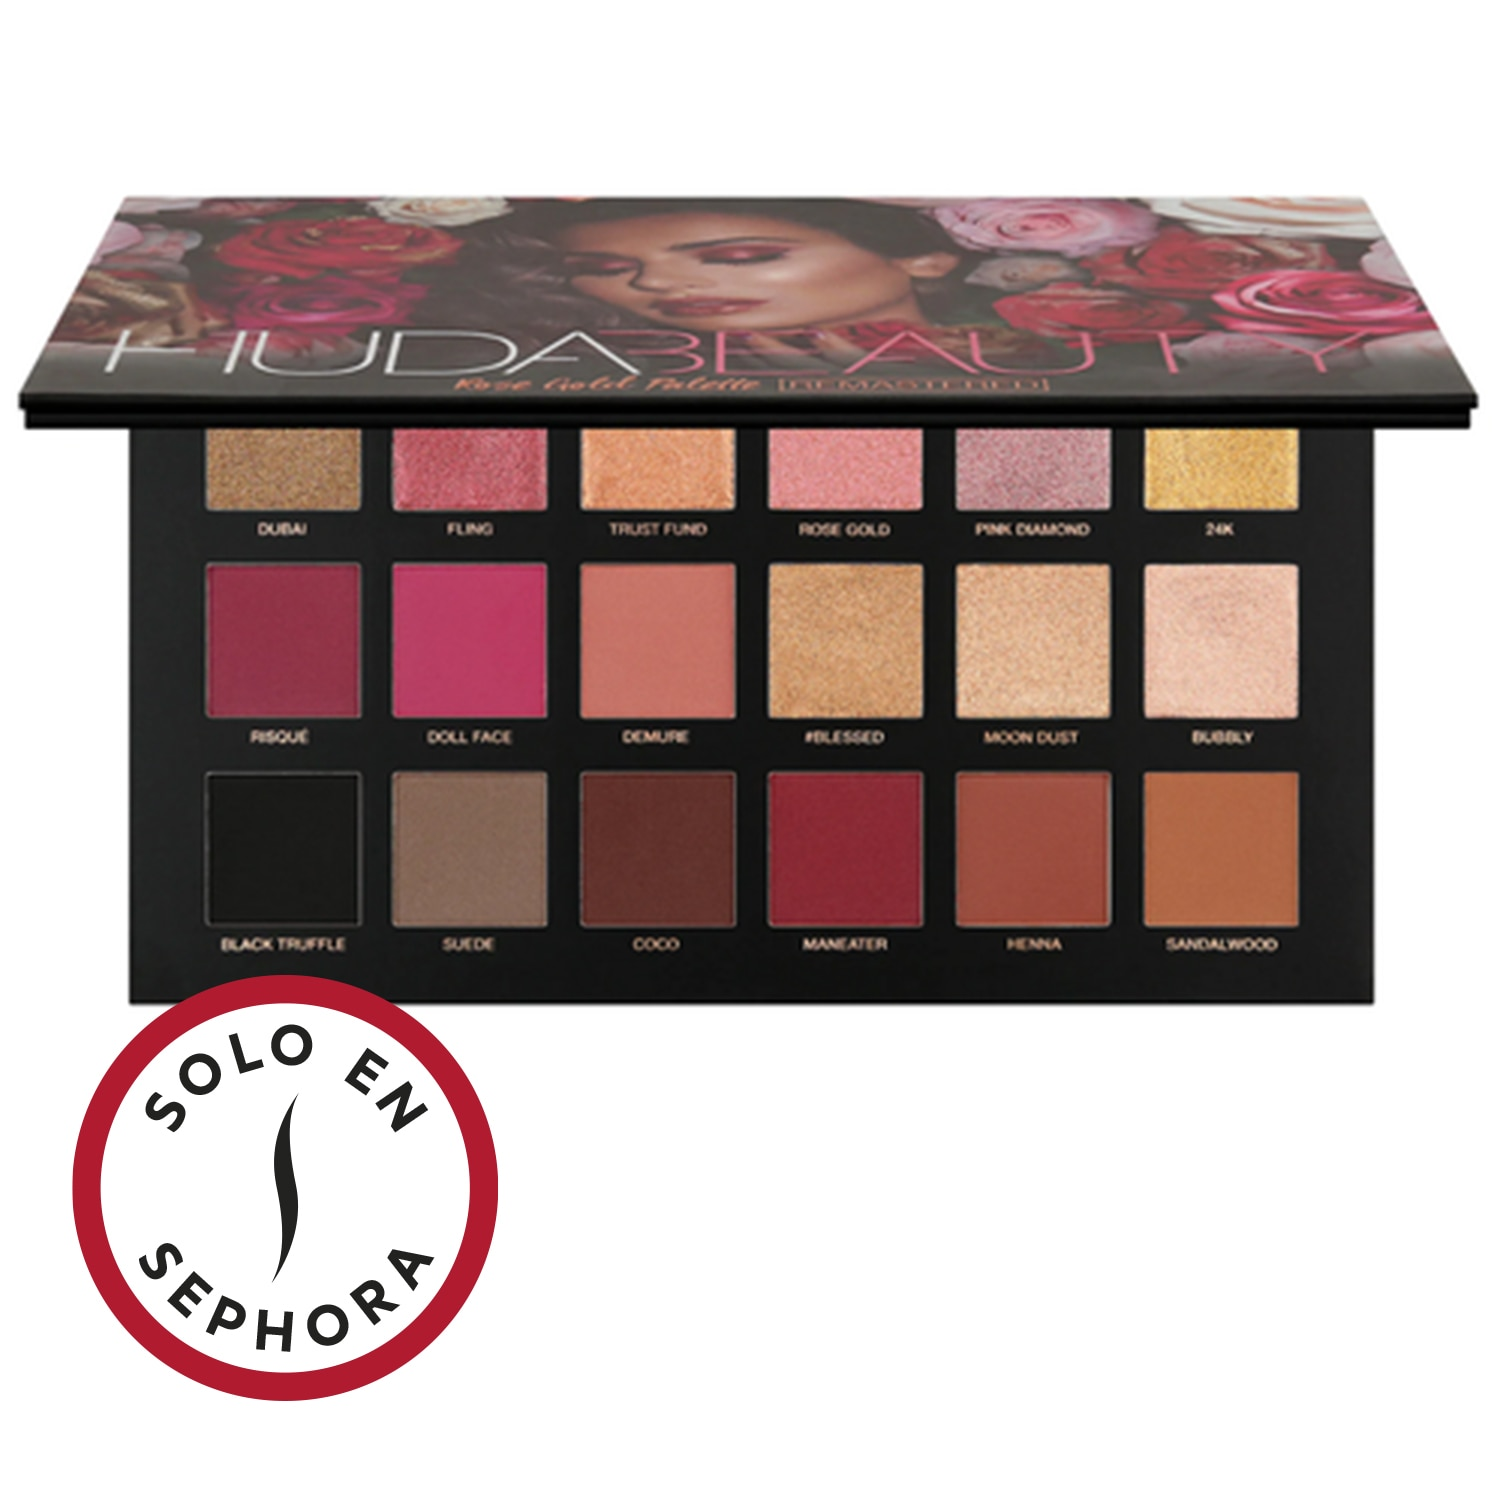 ROSE GOLD REMASTERED EYESHADOW PALETTE (PALETA DE SOMBRA DE OJOS)